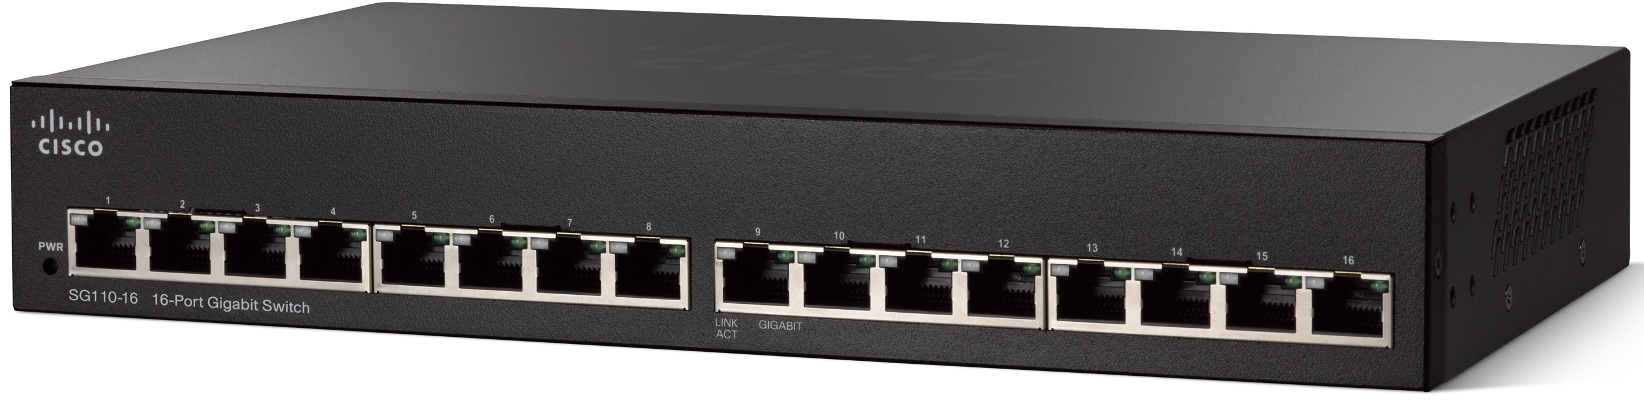 Cisco SG 110-16, 16-port Gigabit switch